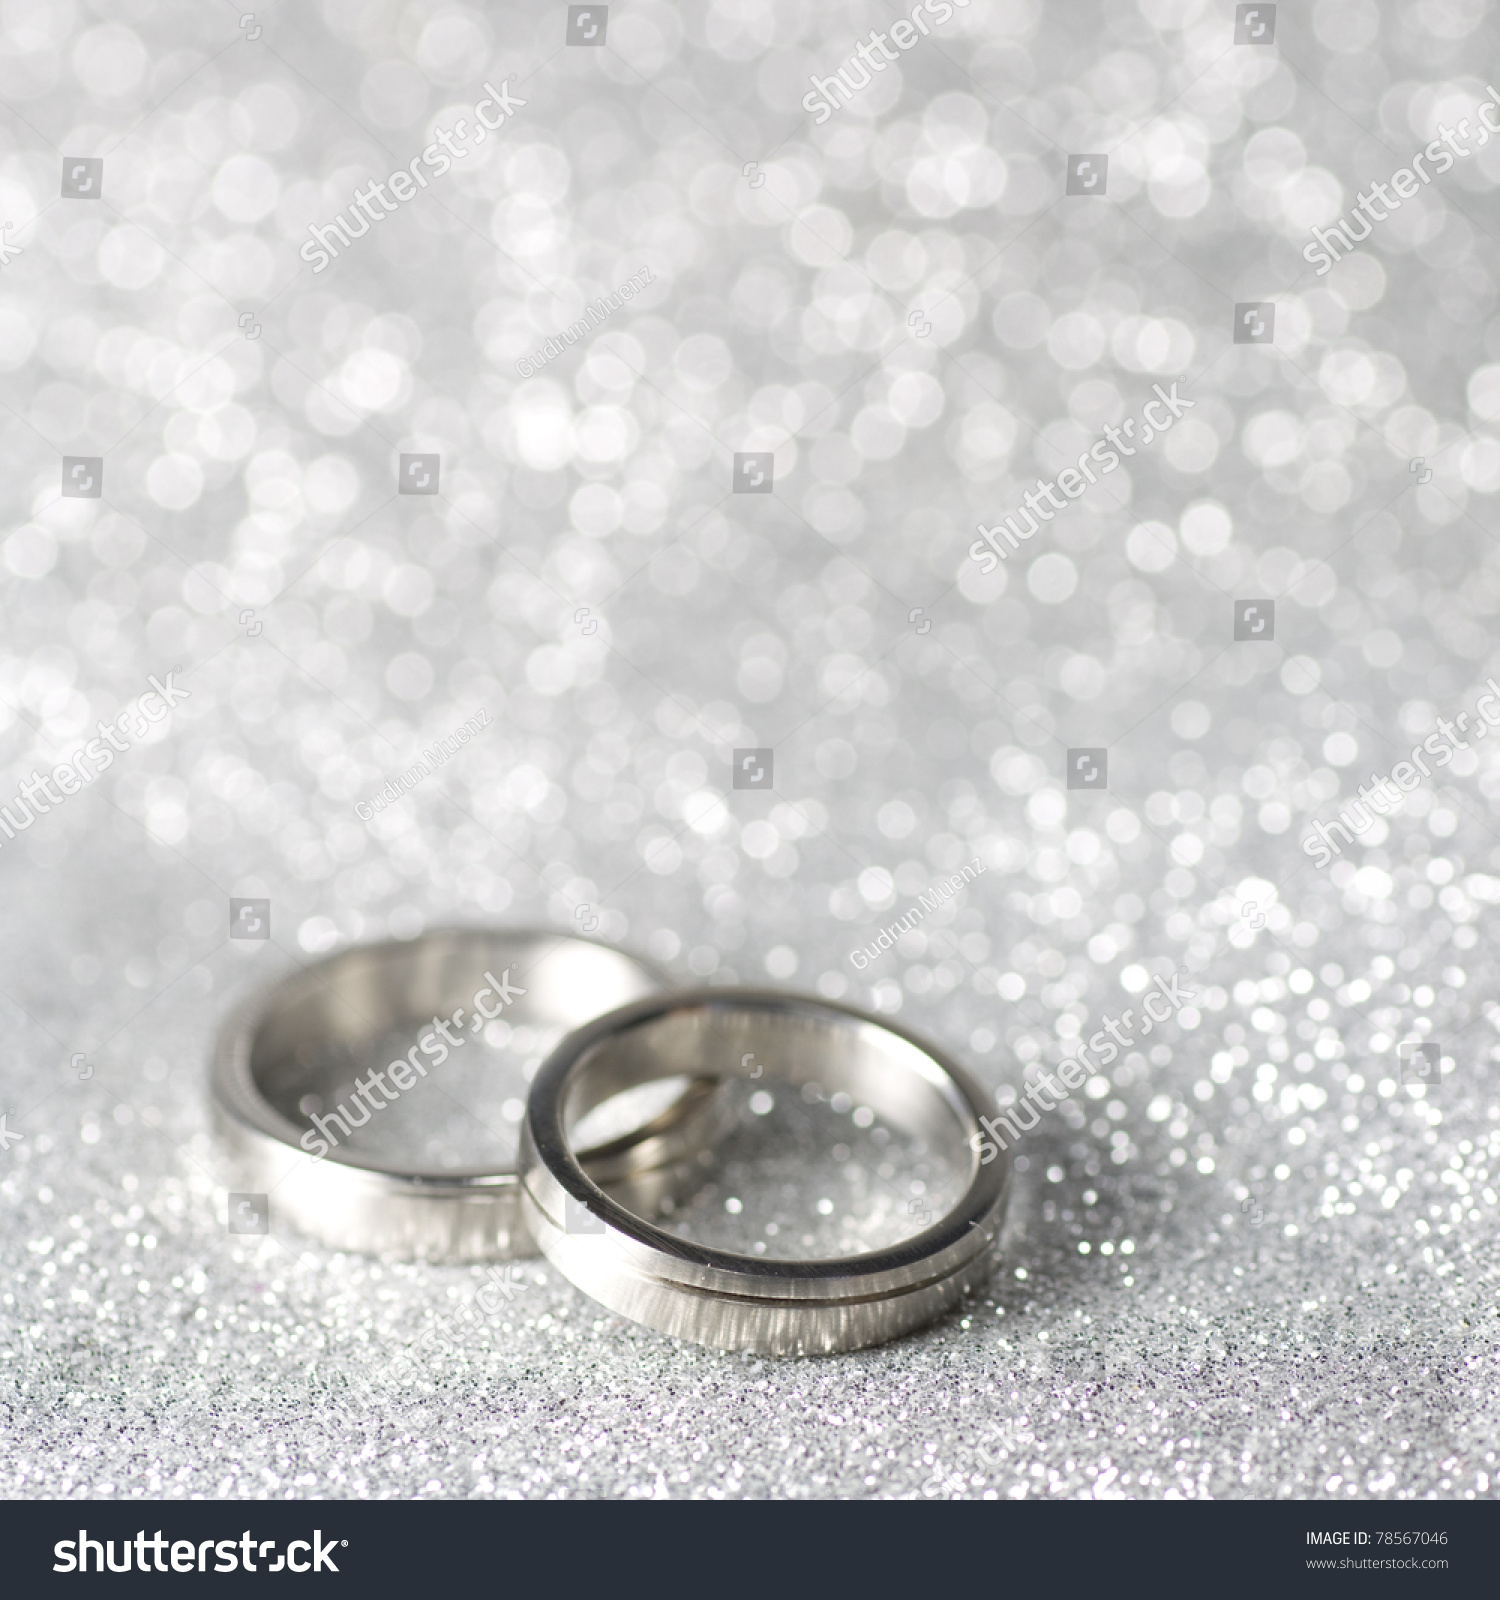 wedding rings on silver background silver wedding rings Wedding rings on a silver background